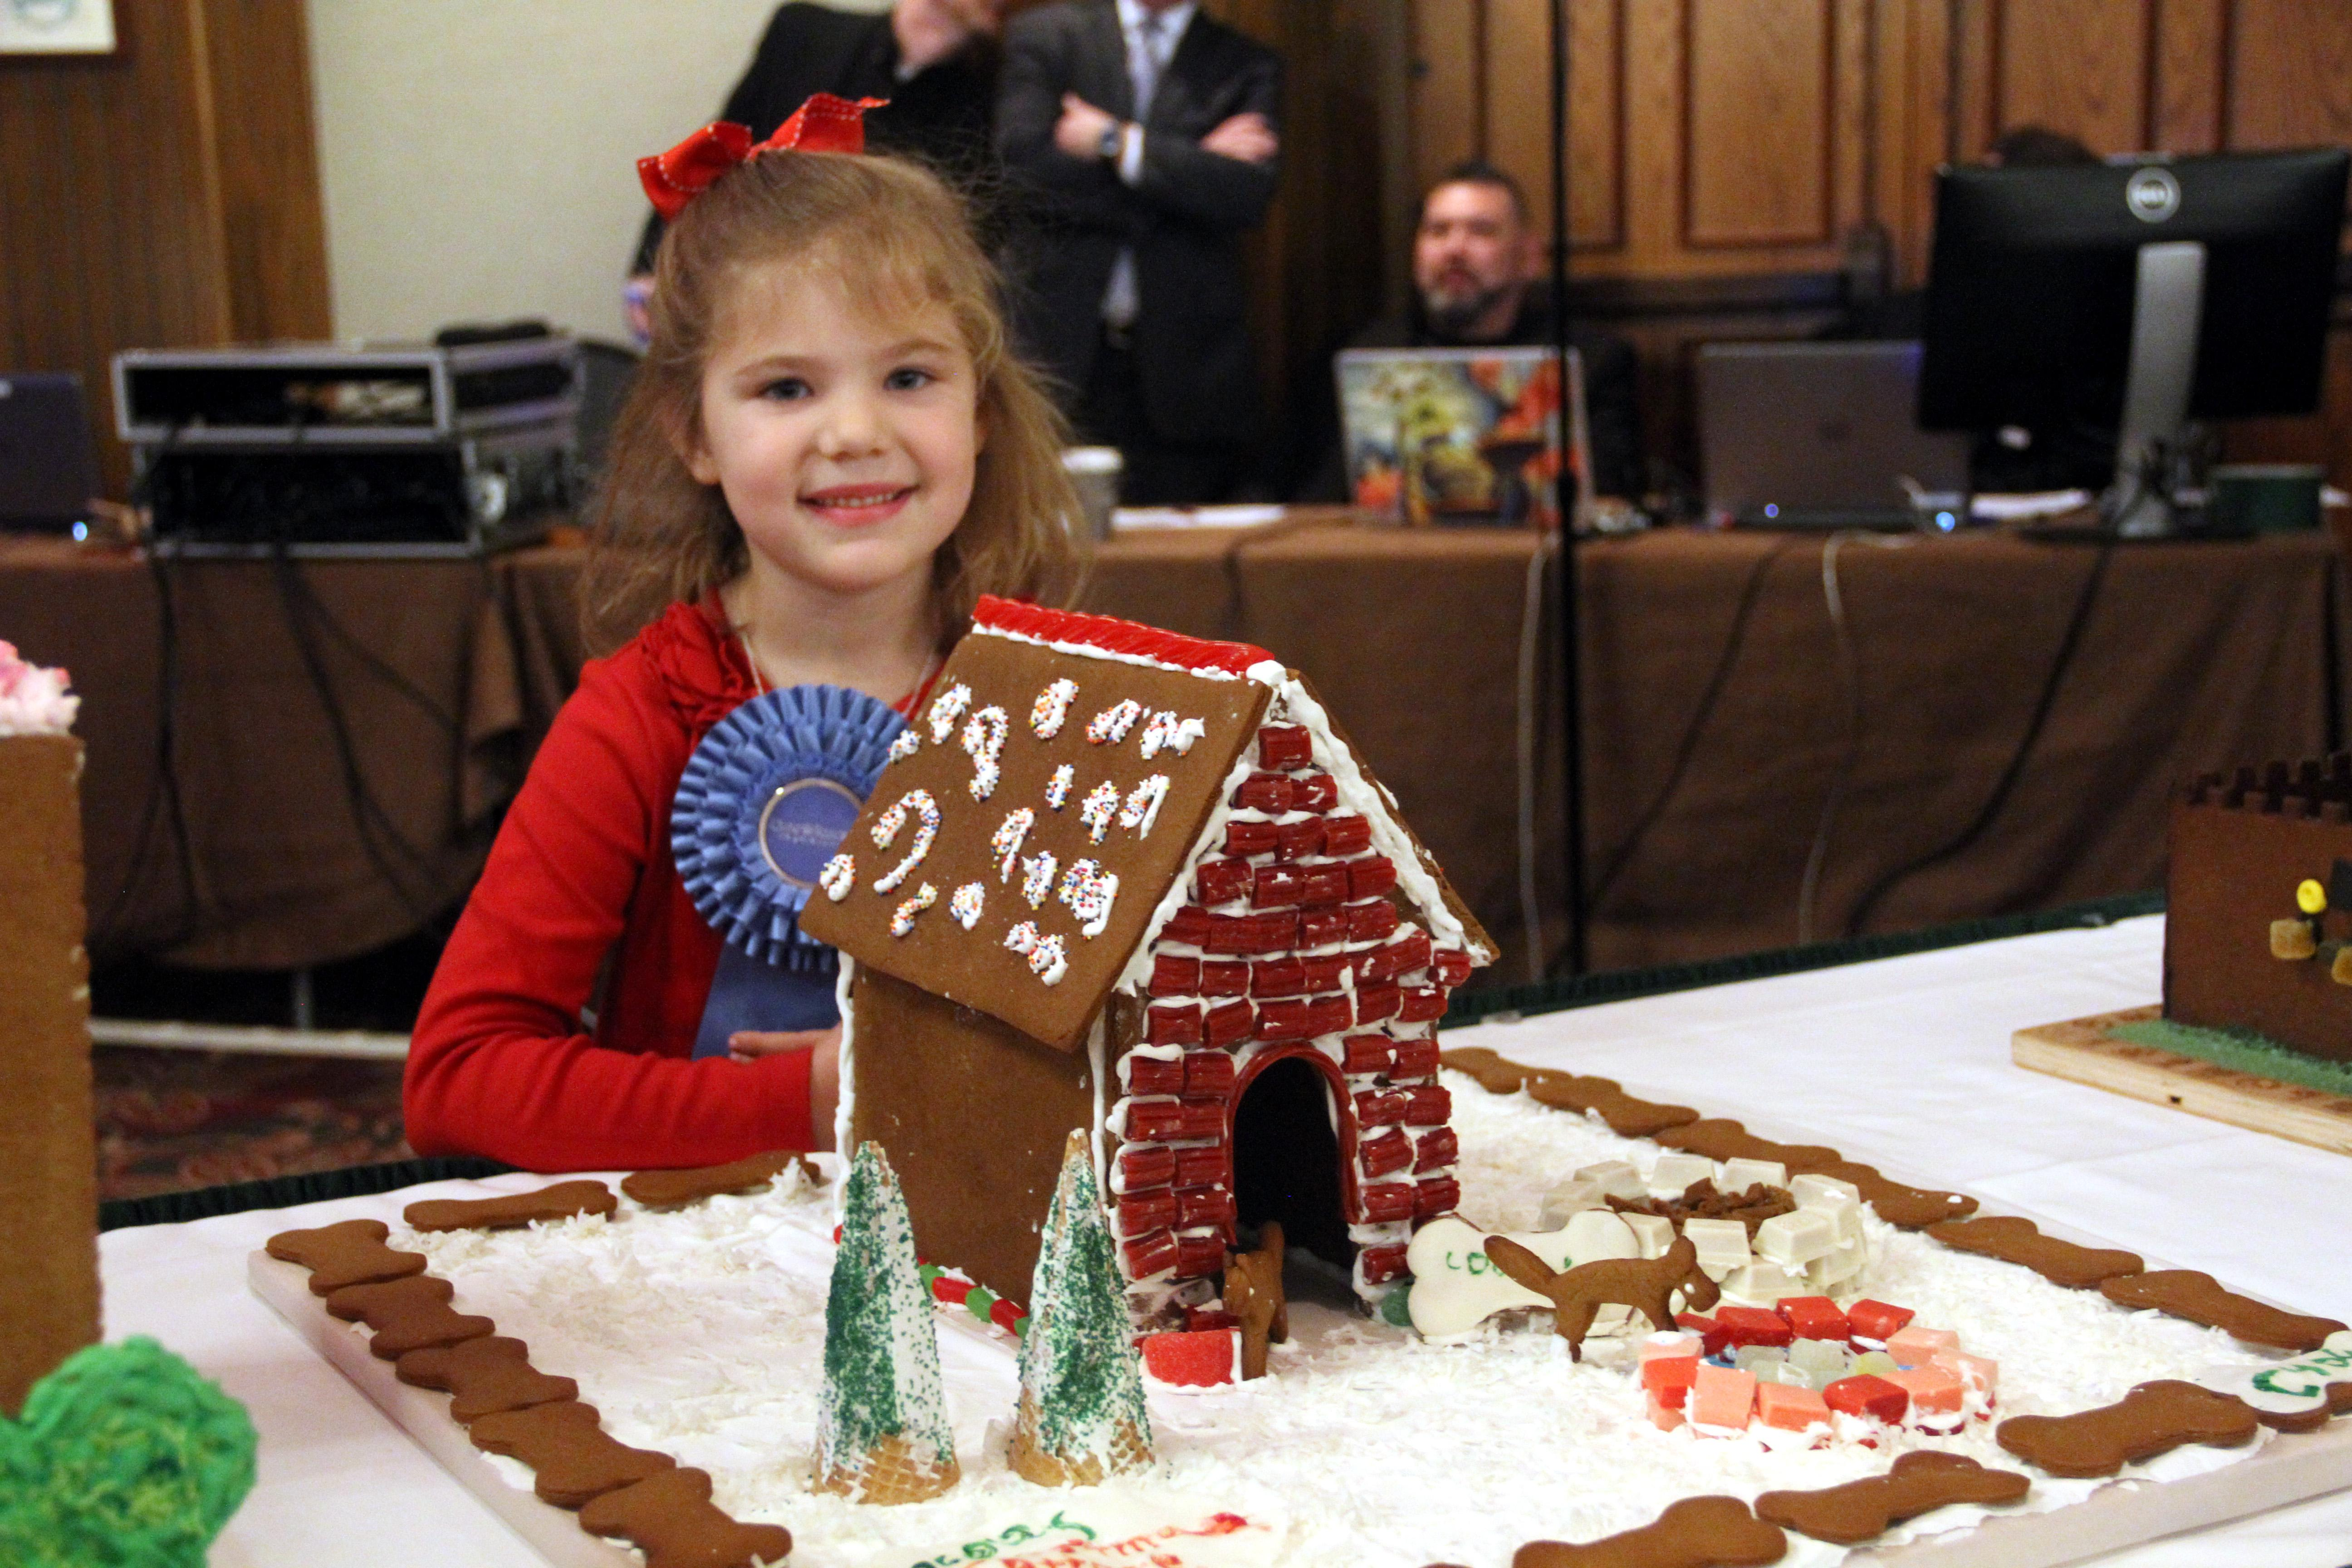 The scene at the National Gingerbread House Competition at the Omni Grove Park Inn on Nov. 20, 2017. (Photo credit: WLOS Staff)